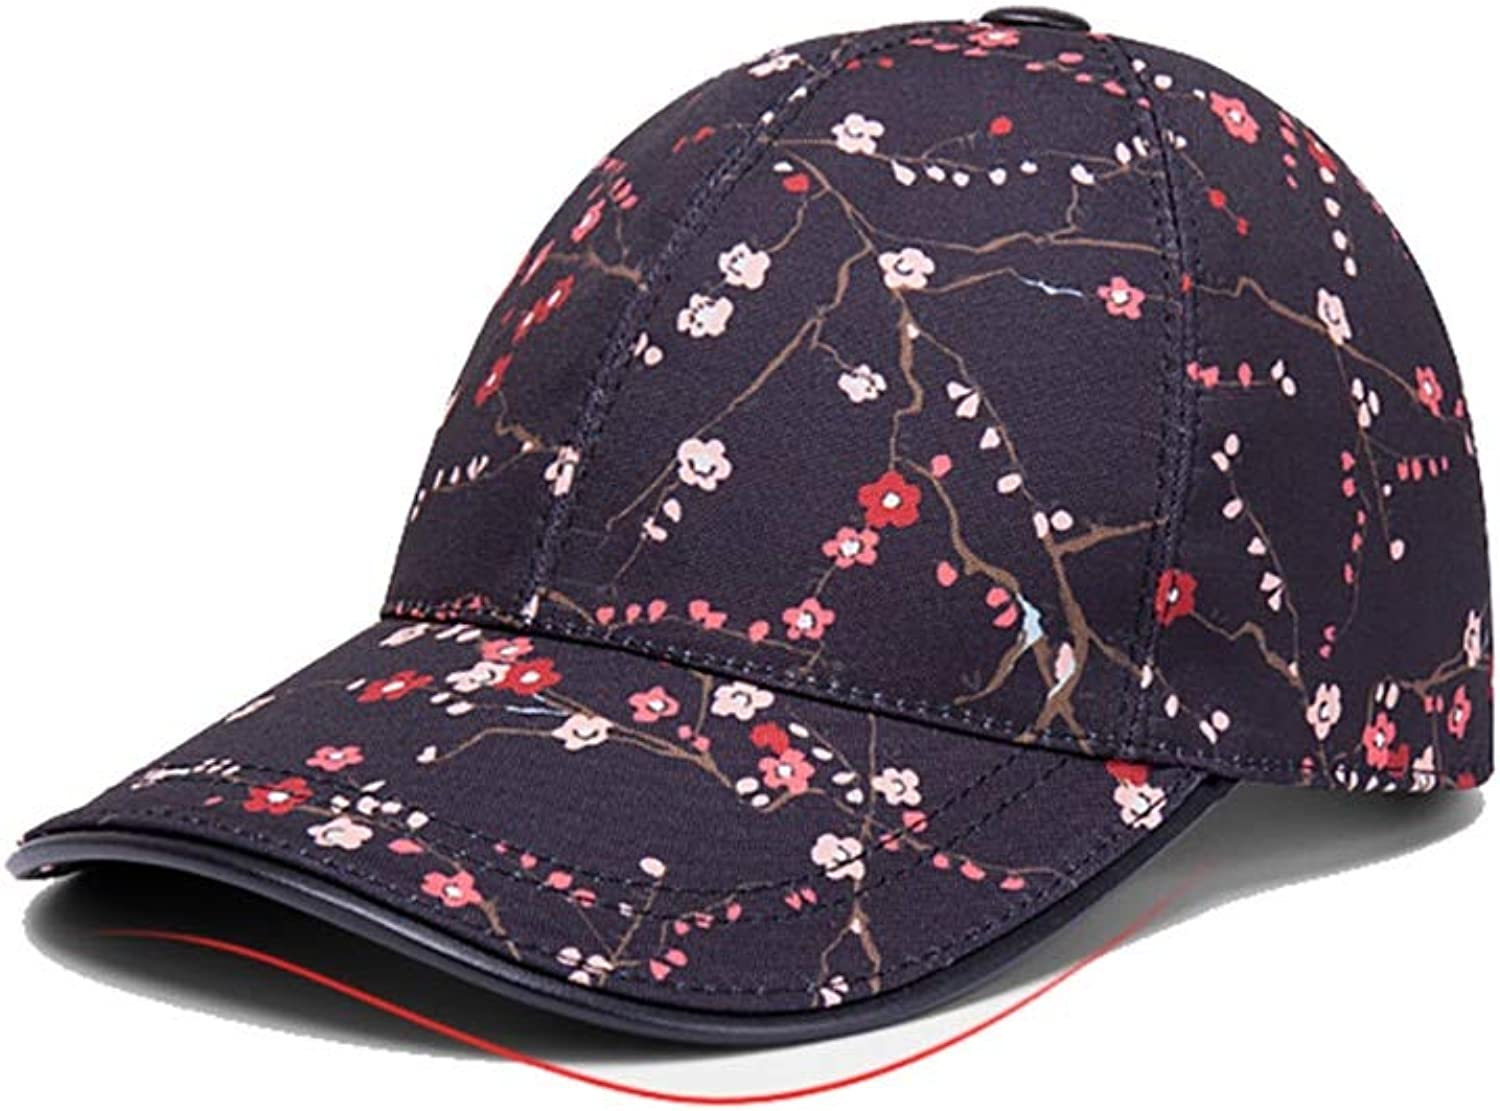 Unisex Sports hat Adjustable Peaked Cap Women Visor hat Curved Brim Easy to Carry Prevent Sun Exposure Caps Foldable Summer Perfect hat (color   Black Plum, Size   5658cm)